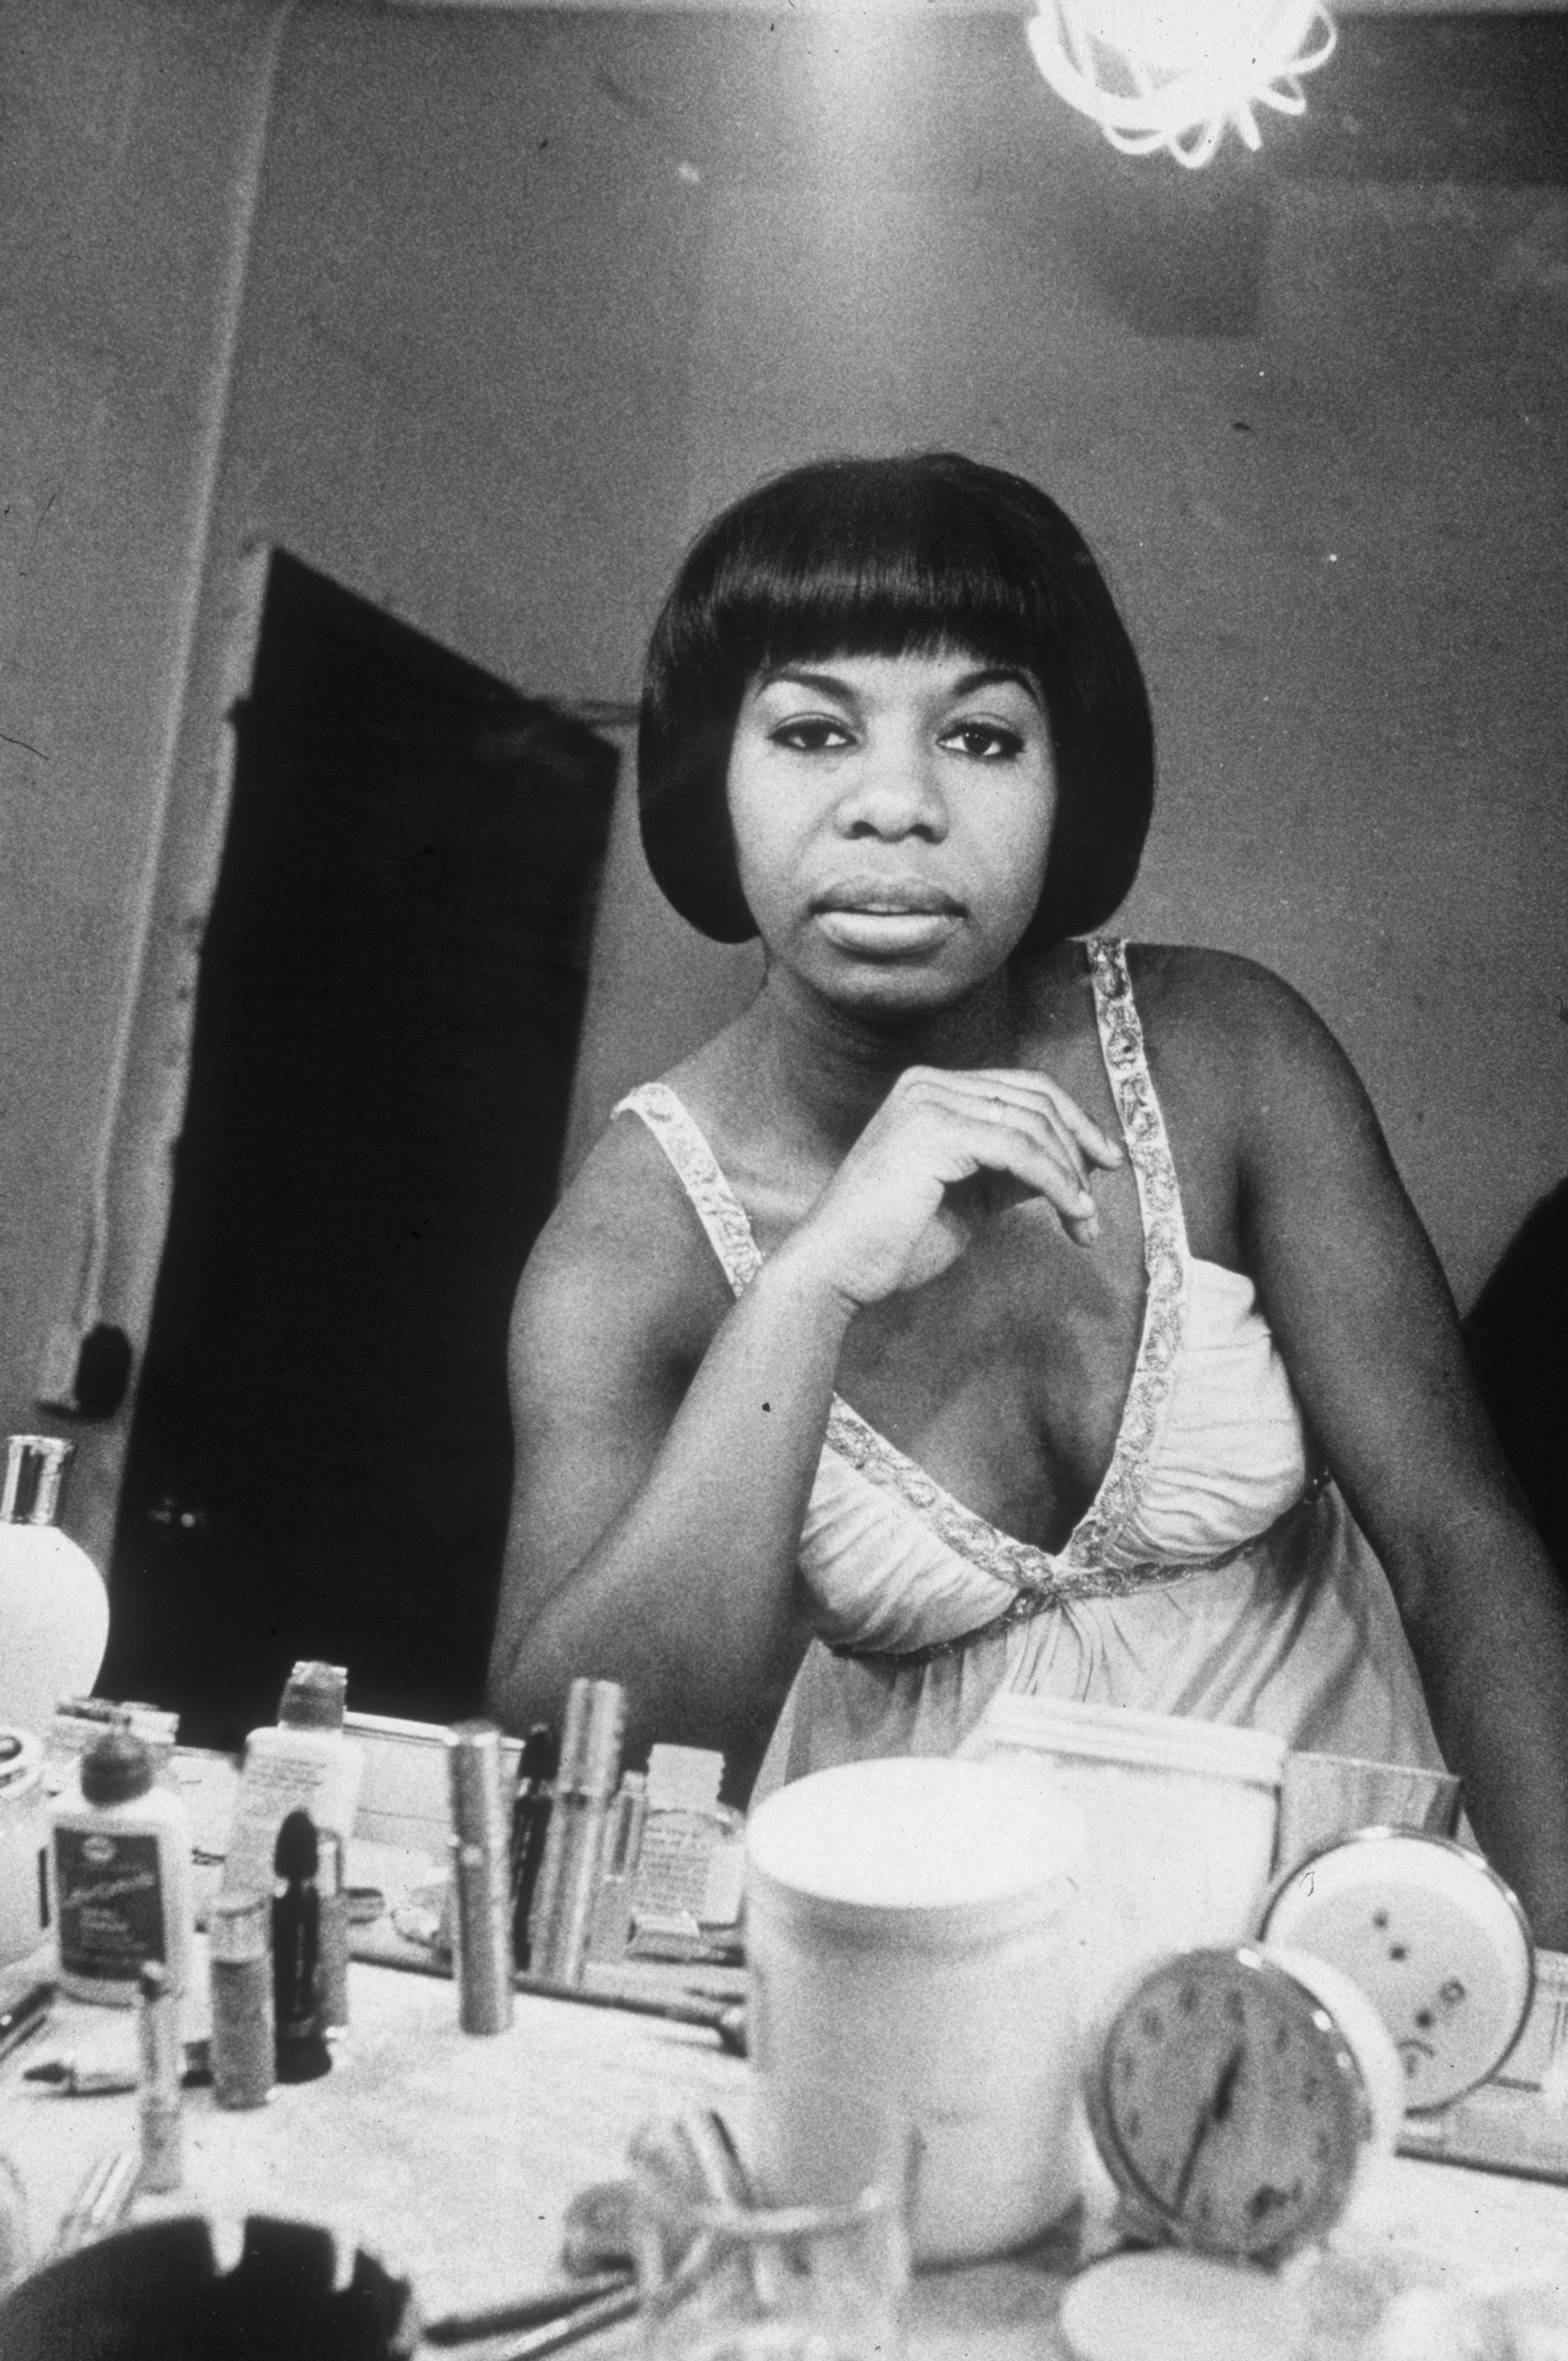 19th March 1955:  Headshot of American singer and musician Nina Simone (1933 - 2003) seen in her dressing room mirror, seated at her makeup table at the Village Vanguard, before a live recording session, New York City.  (Photo by Sam Falk/New York Times Co./Getty Images)